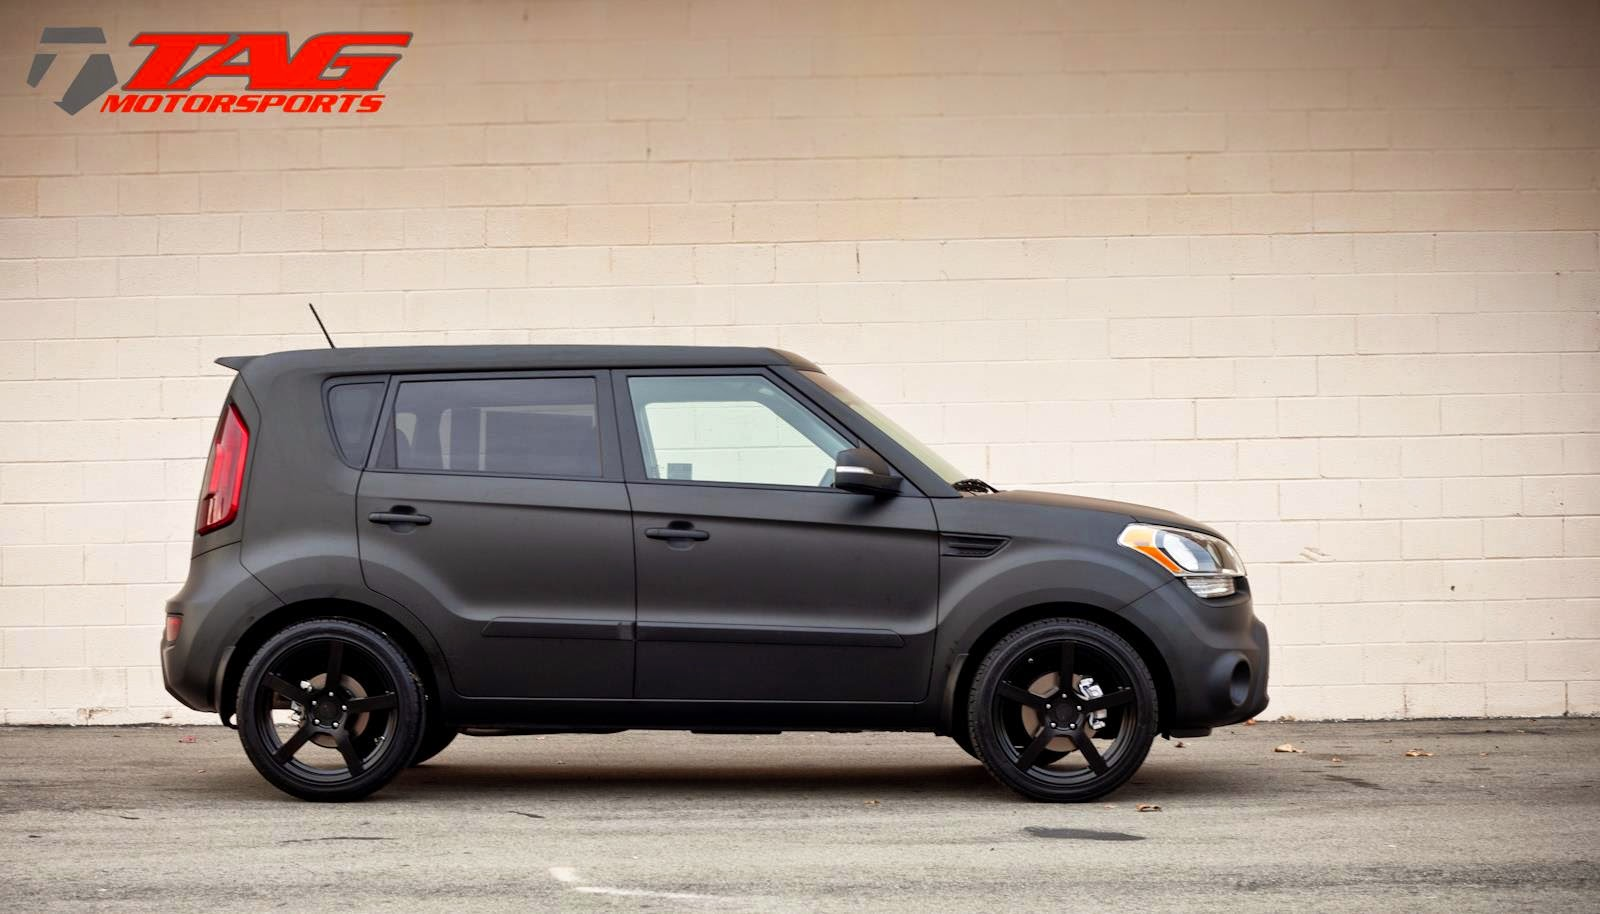 Tha Kia Soul Throwback Thursday 2013 Kia Soul All Black